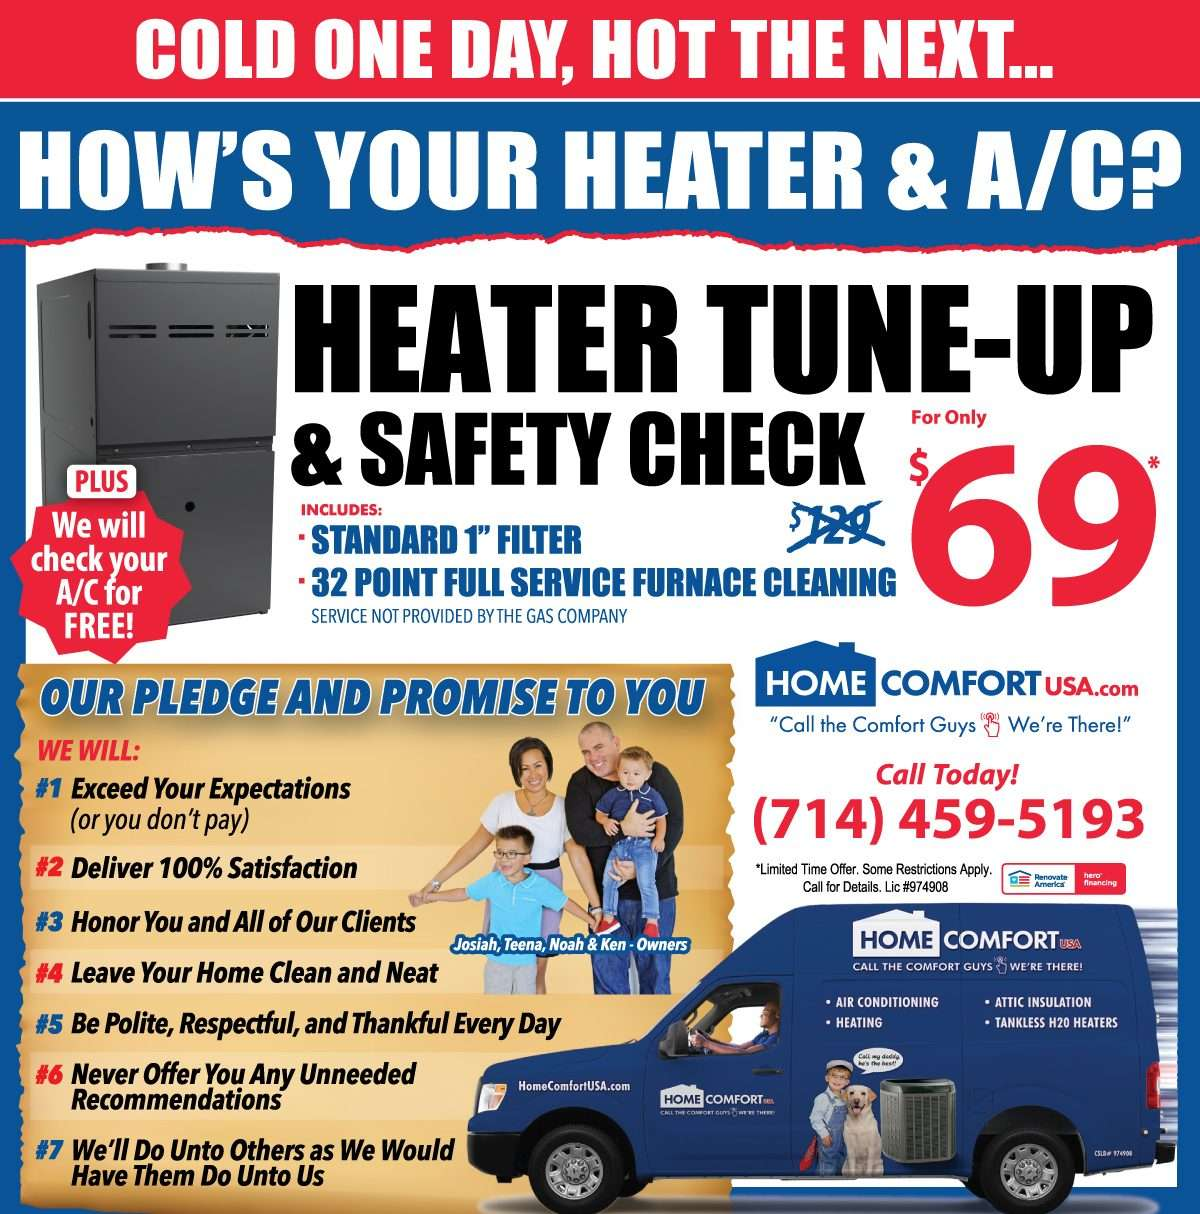 Home Comfort USA Heater Tune Up